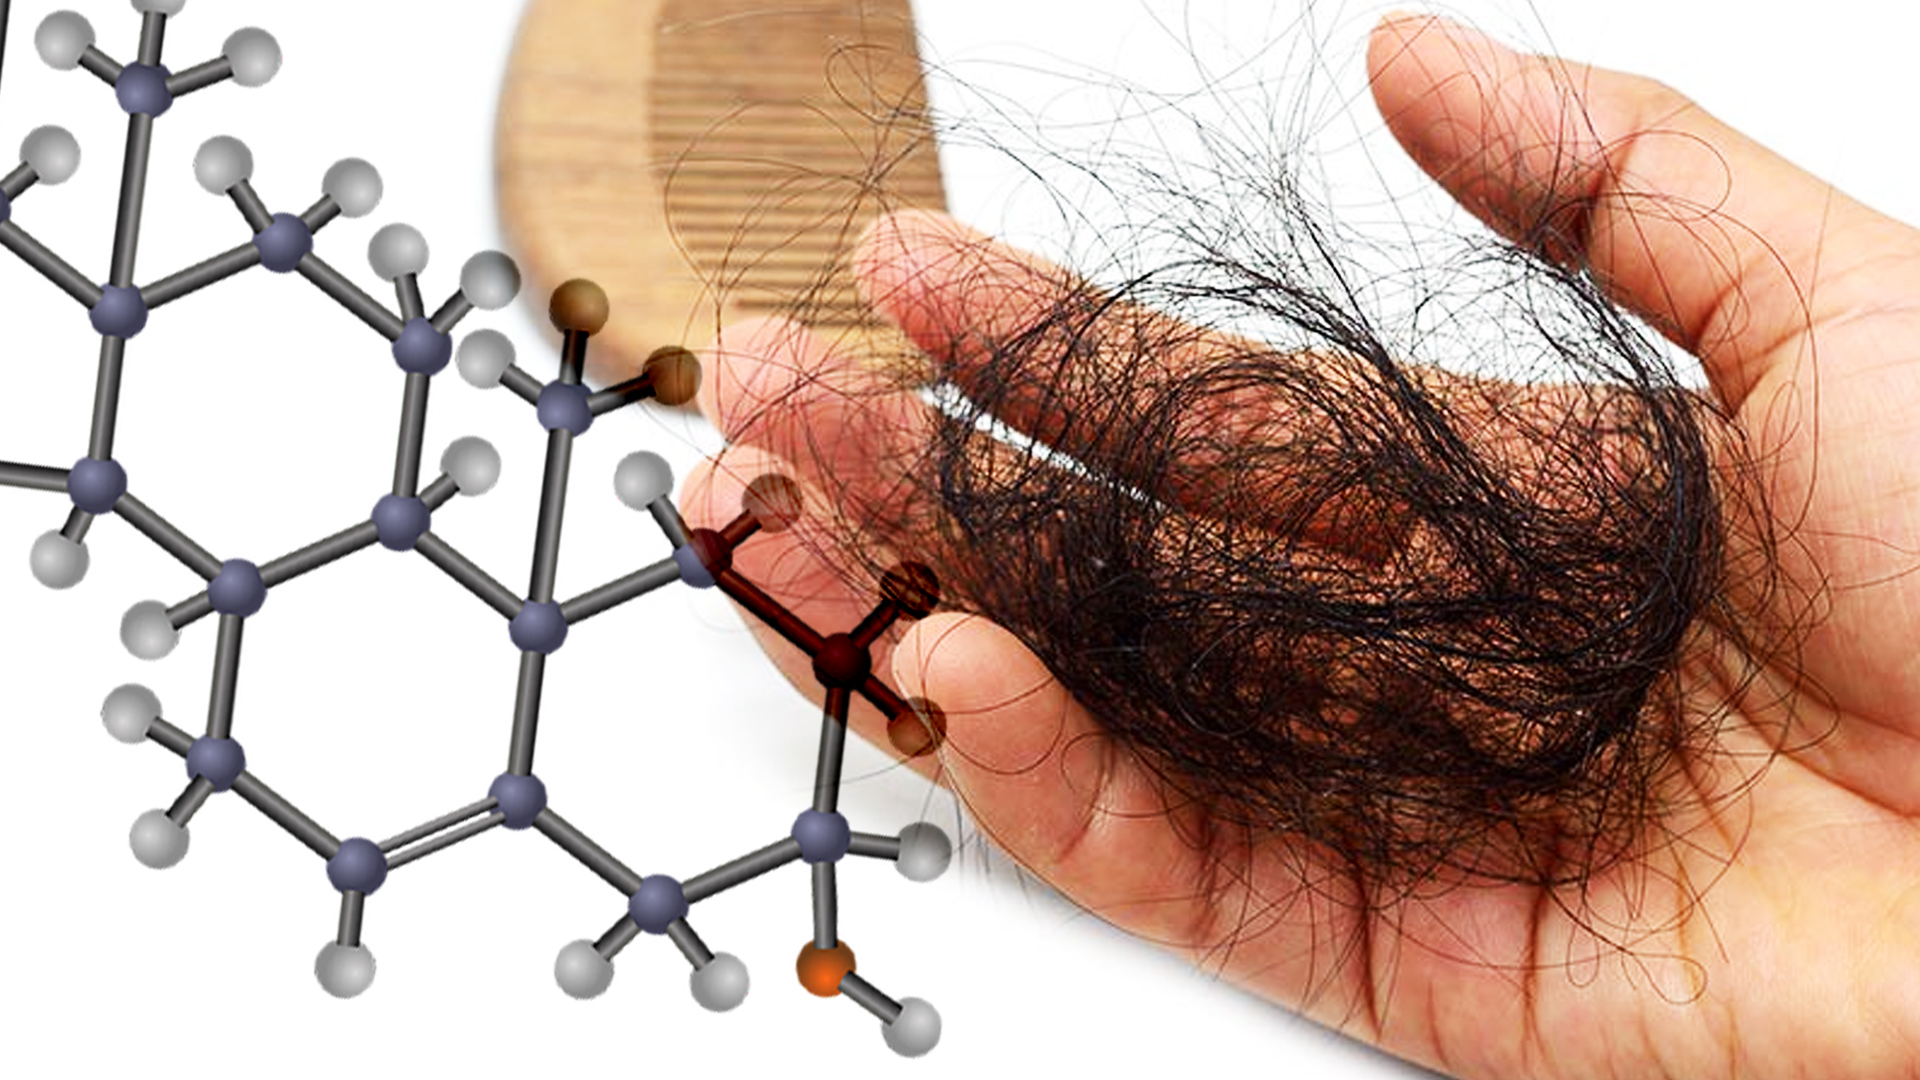 Chemical structure of HGH and GH hair loss on hands